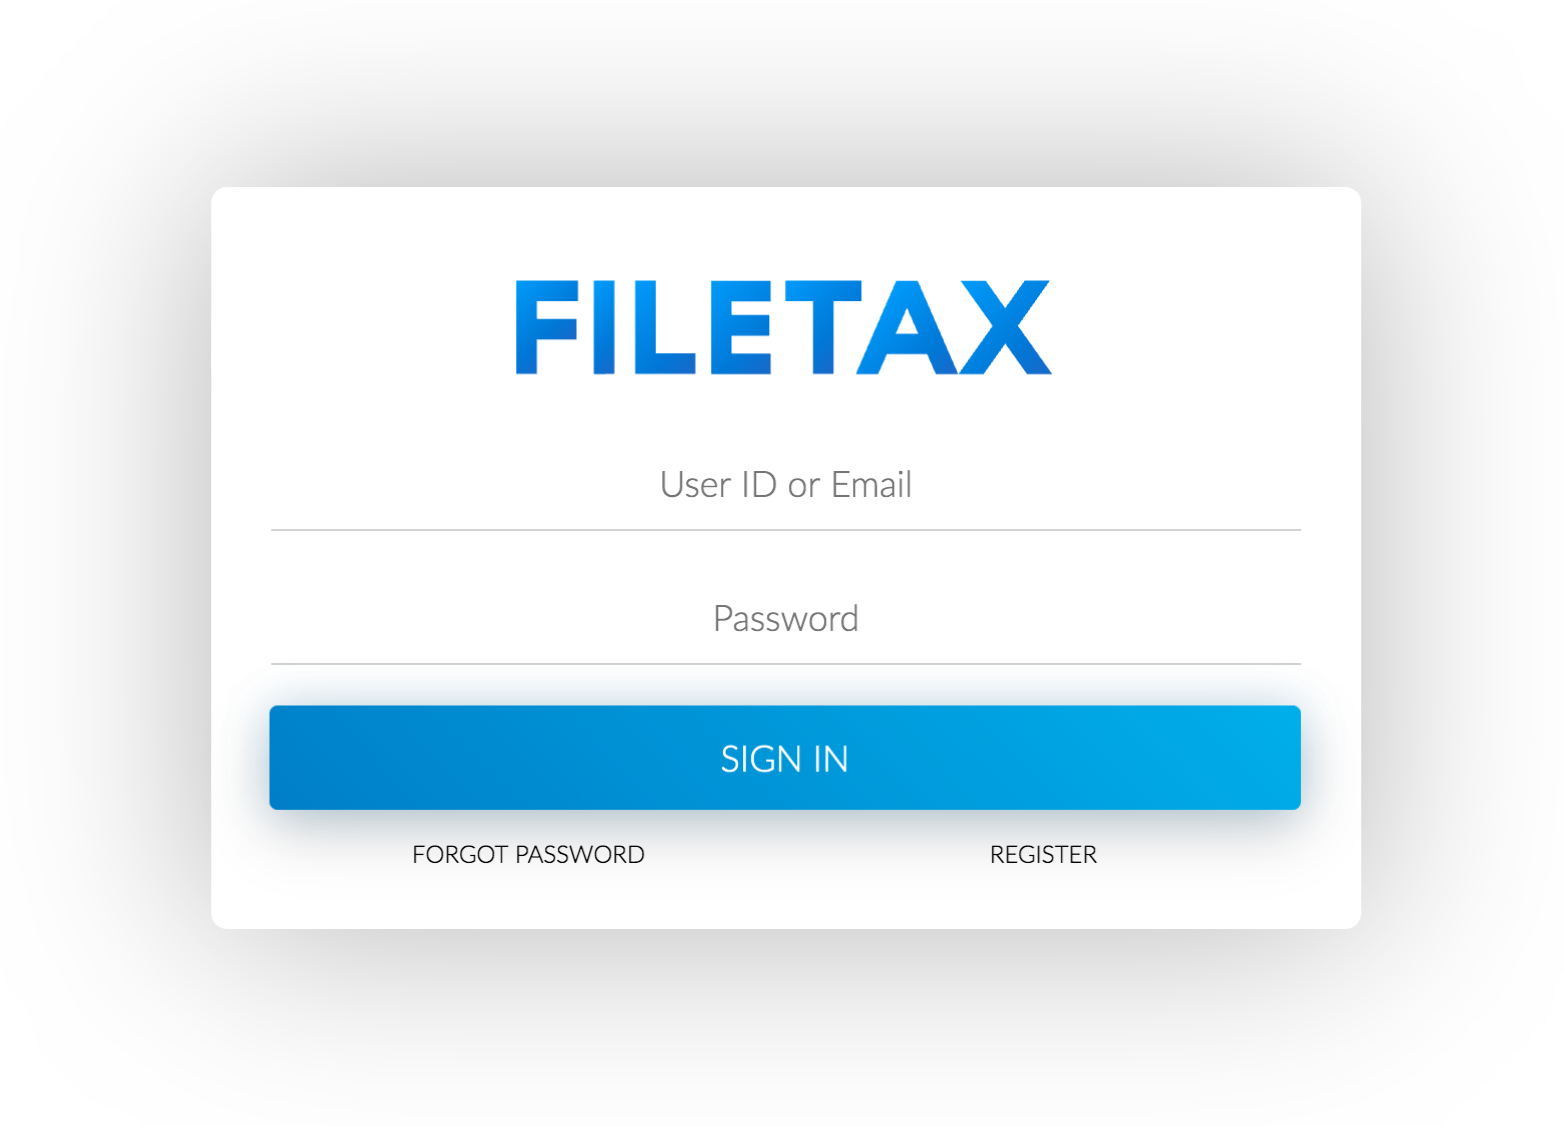 Filetax Login UI